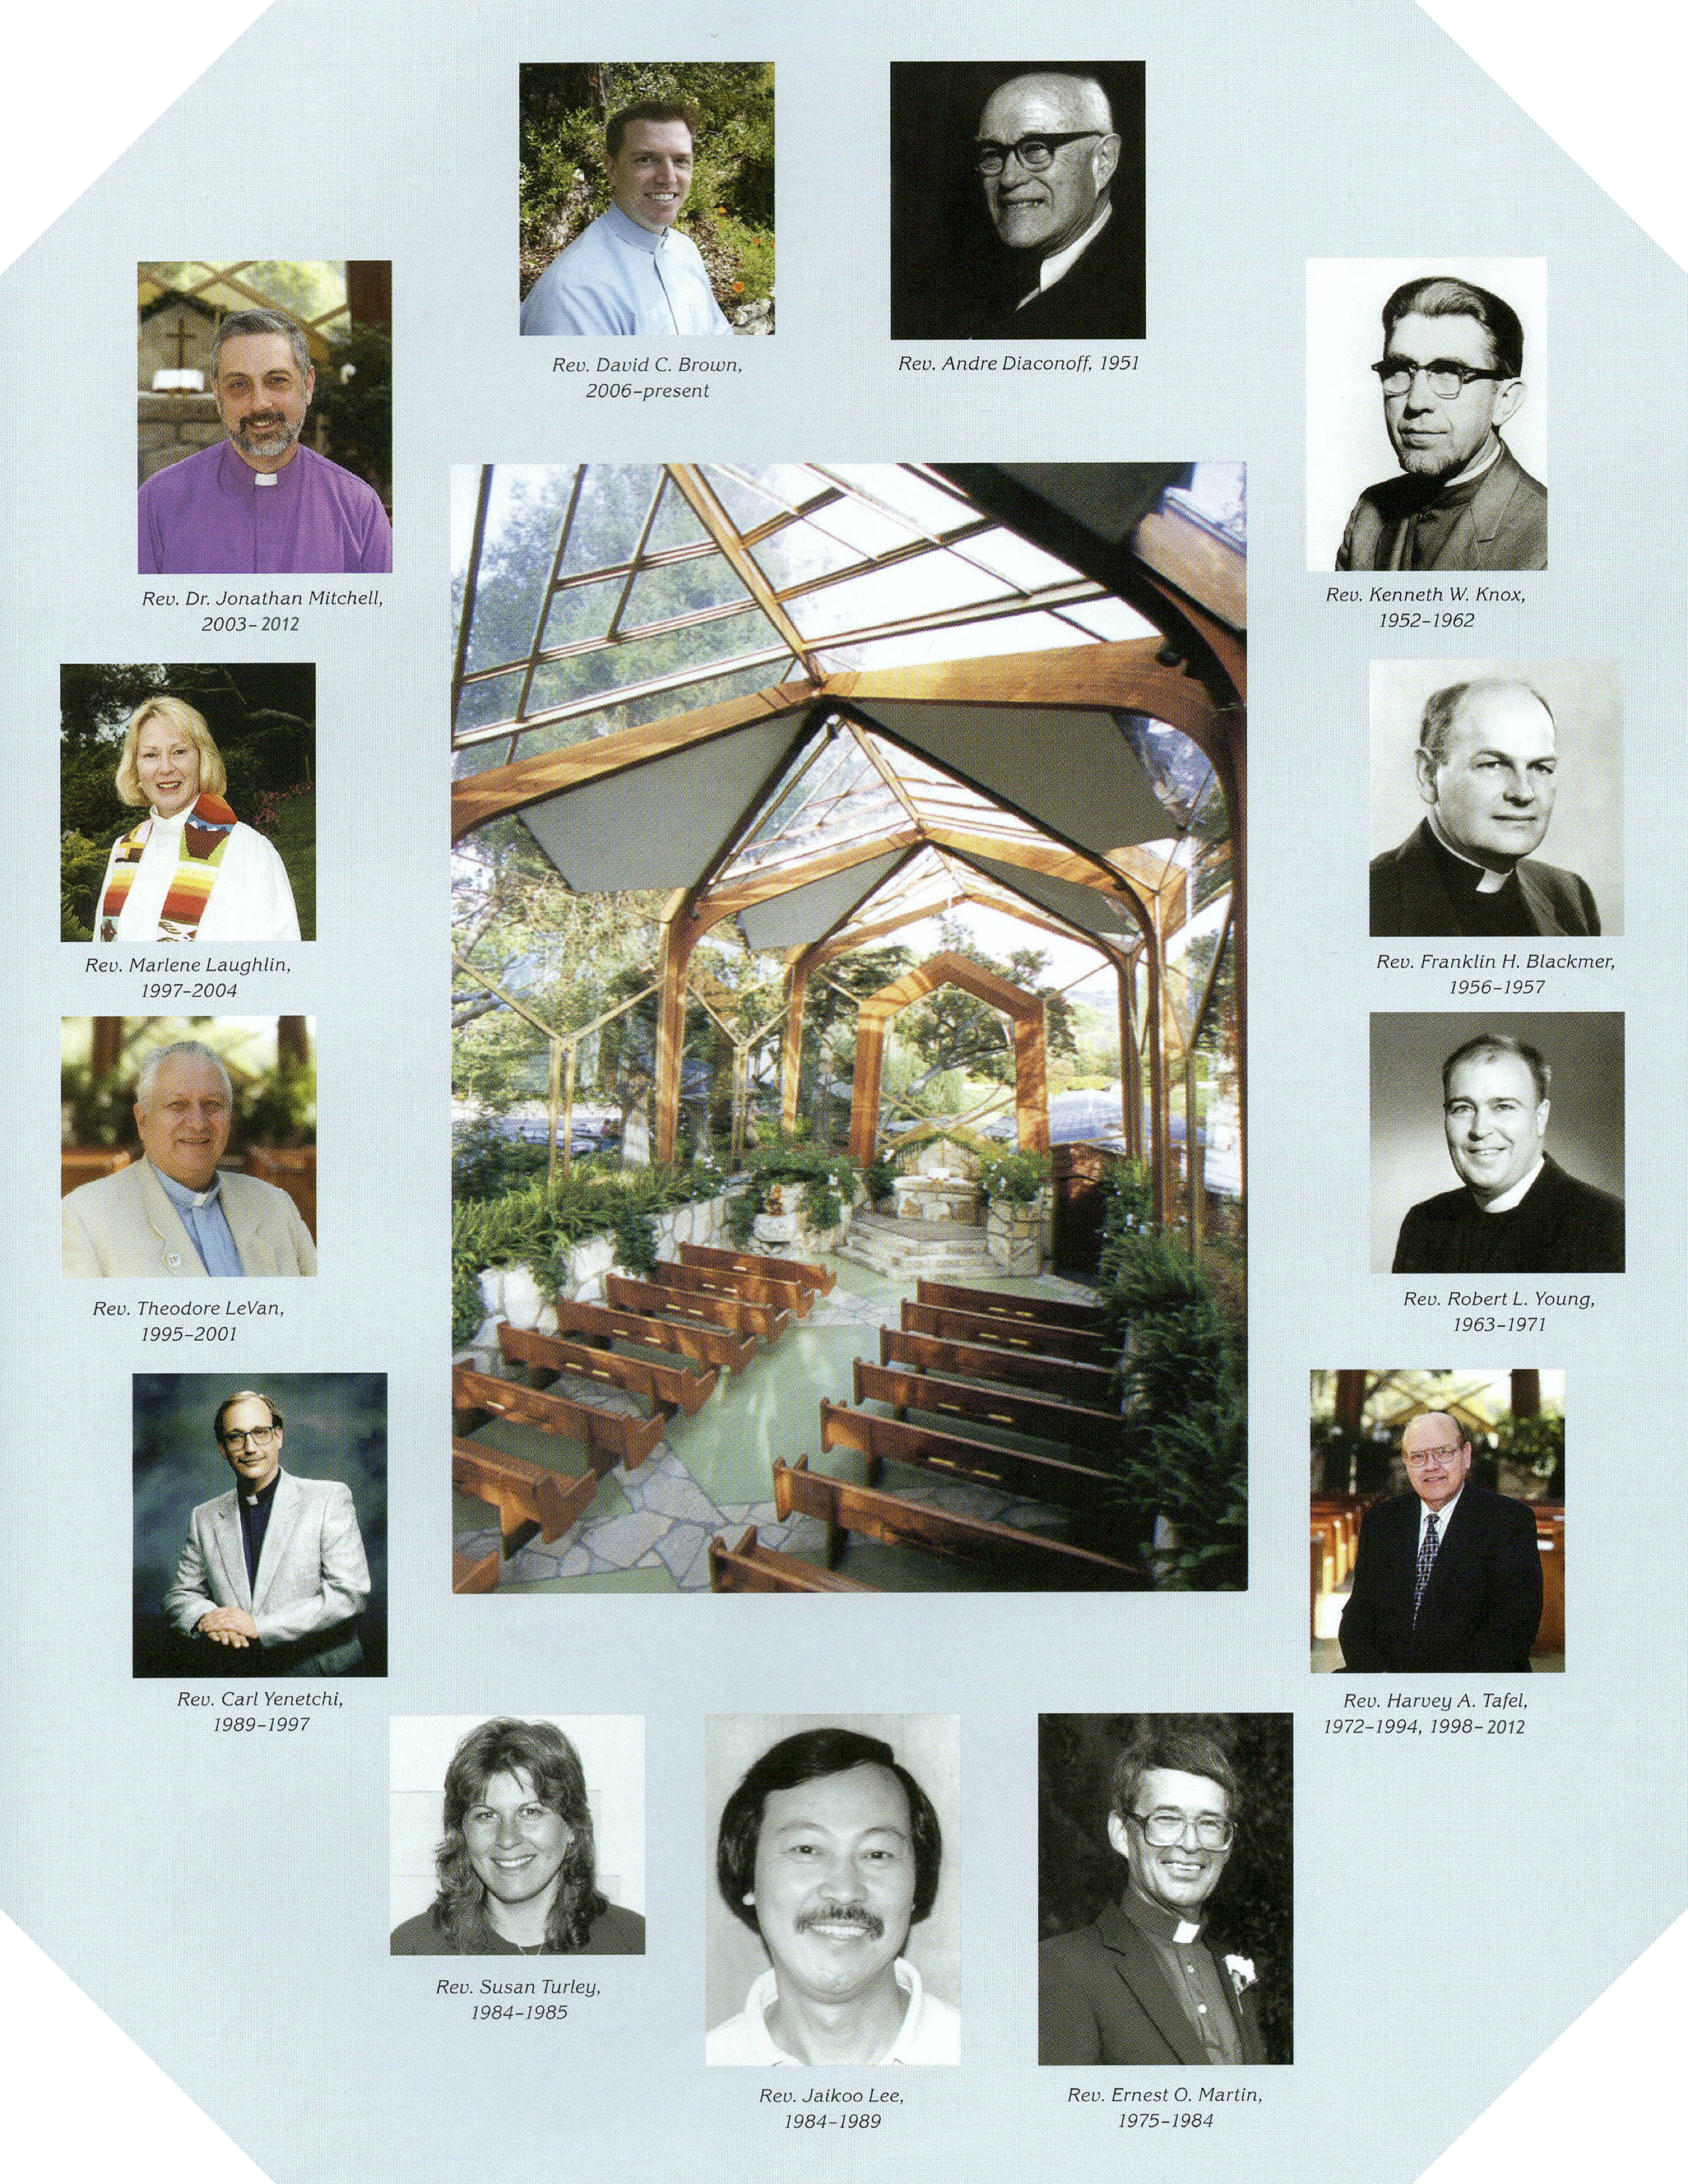 Photos of Lead Chapel Ministers of Wayfarers Chapel in Rancho Palos Verdes, CA known also as the Tree Chapel and the Glass Church